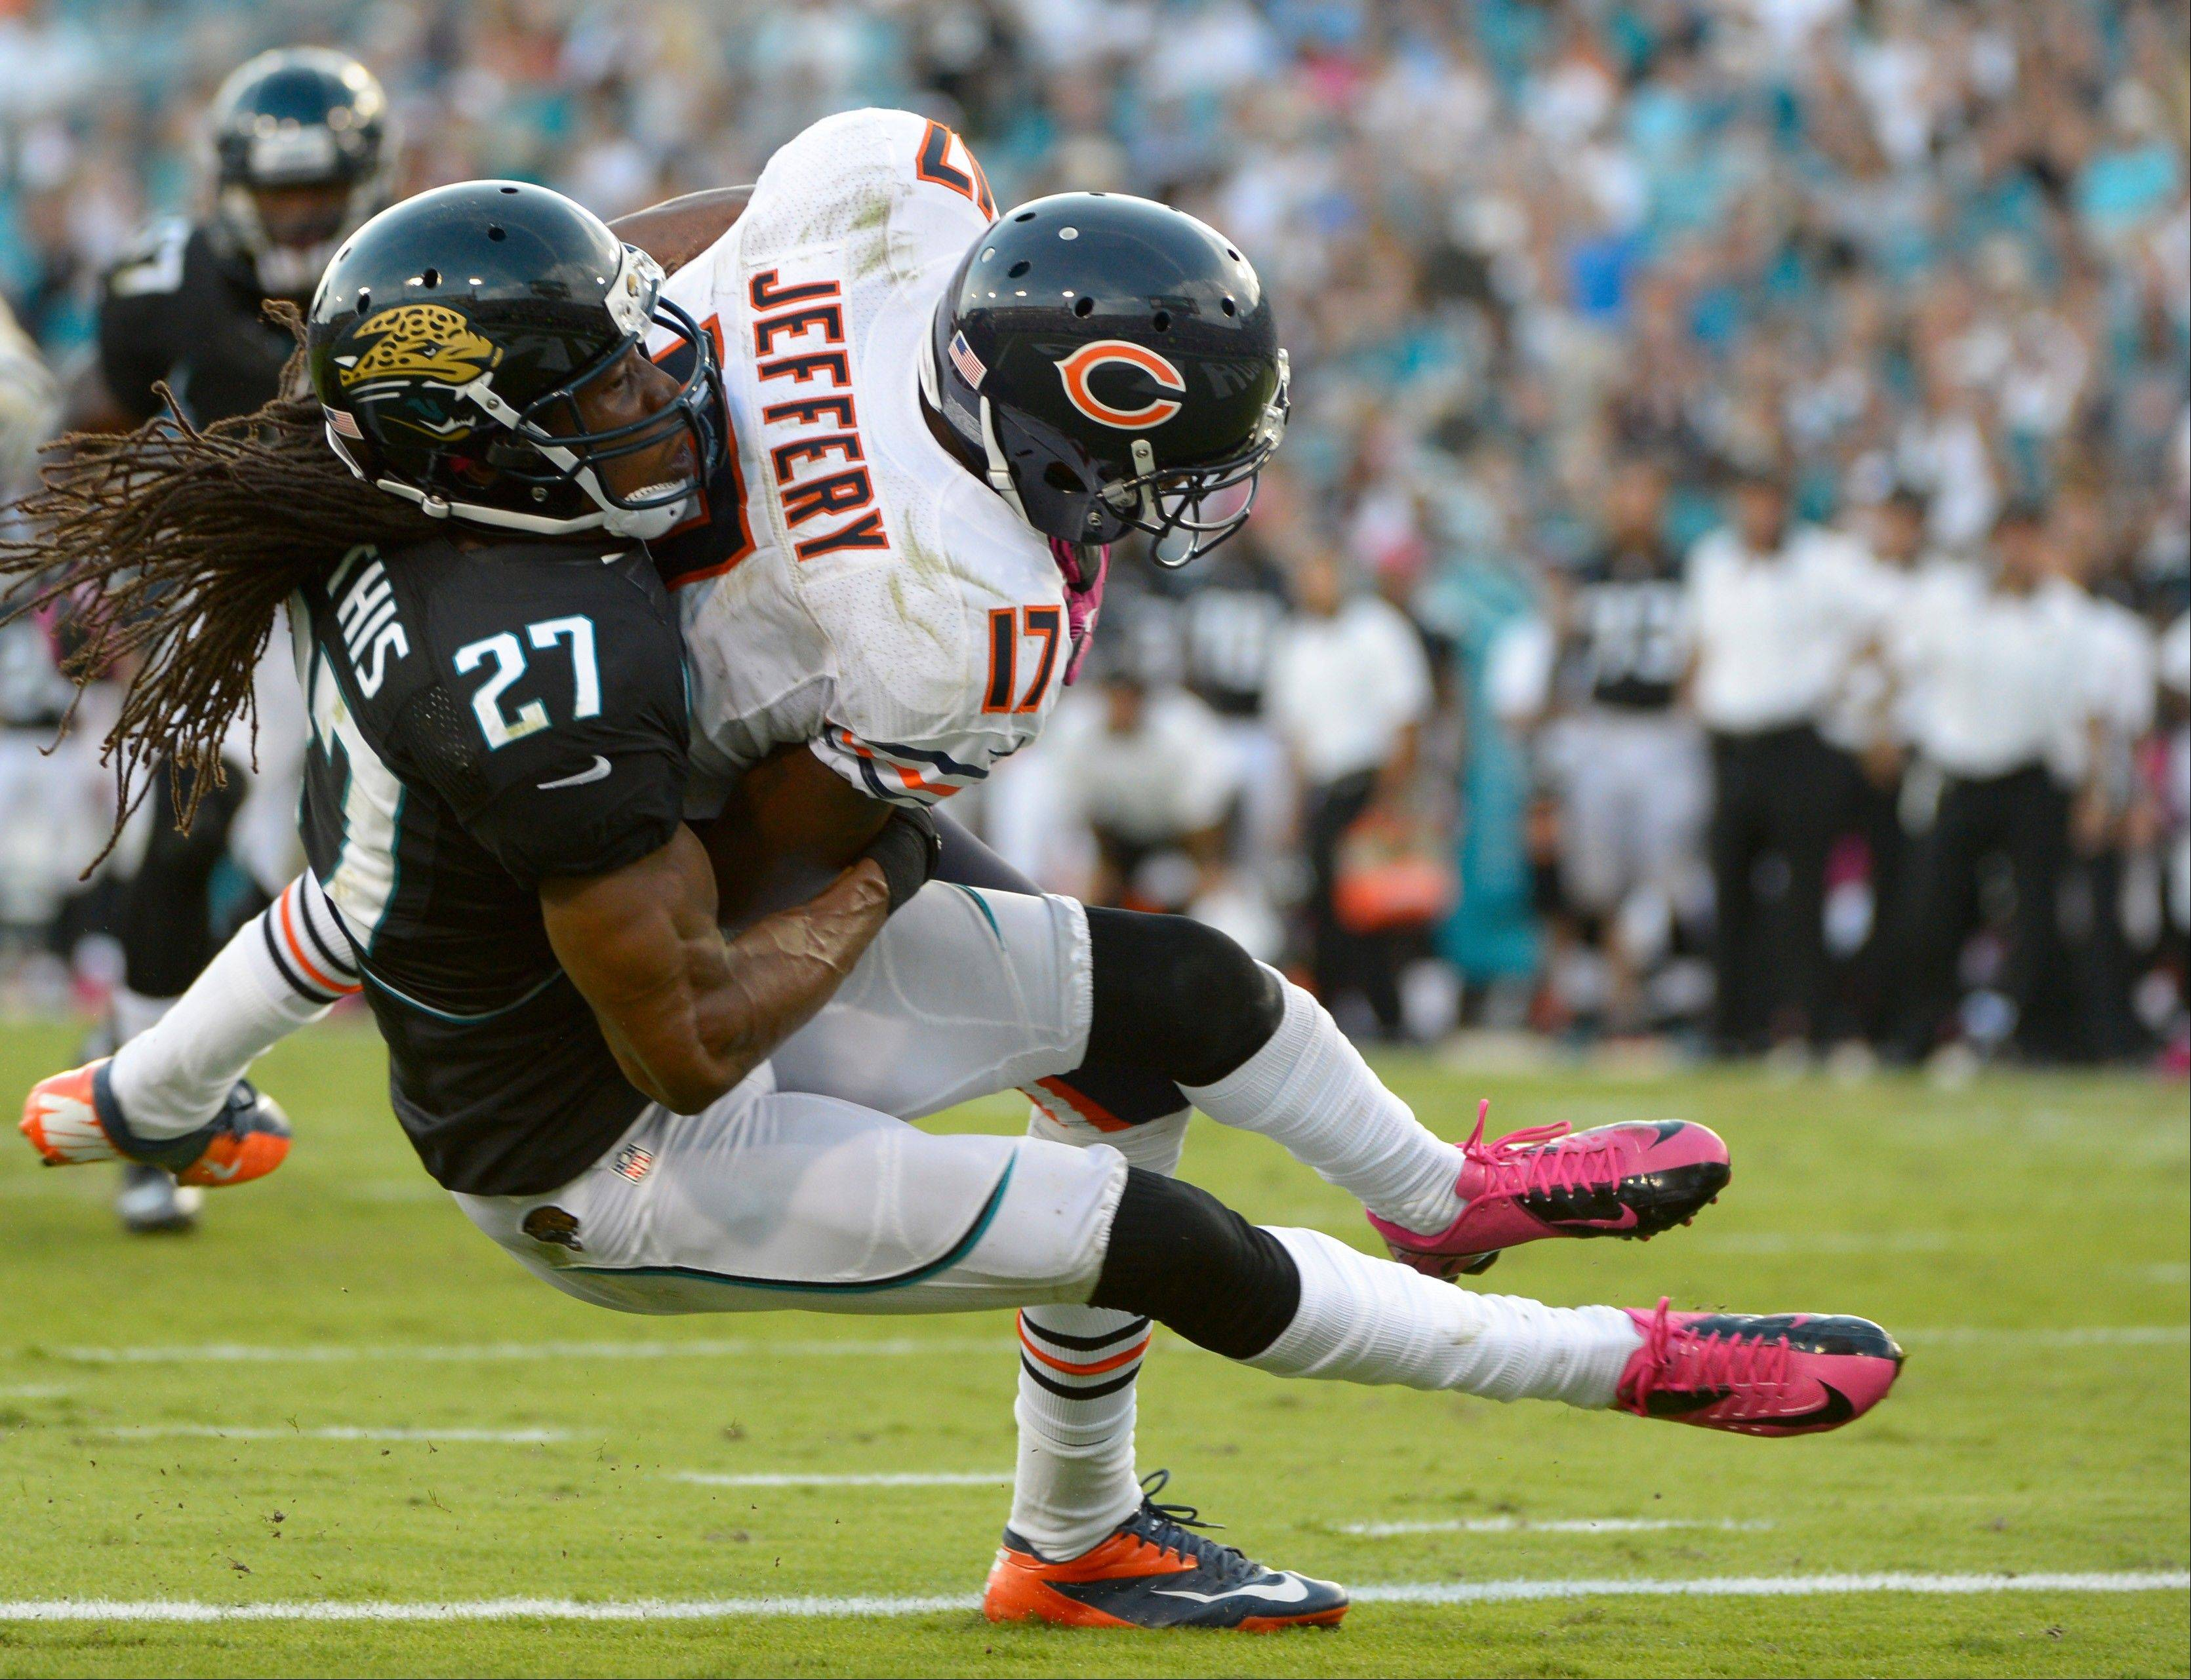 Bears rookie wide receiver Alshon Jeffery did not return after this 10-yard touchdown catch Sunday at Jacksonville.